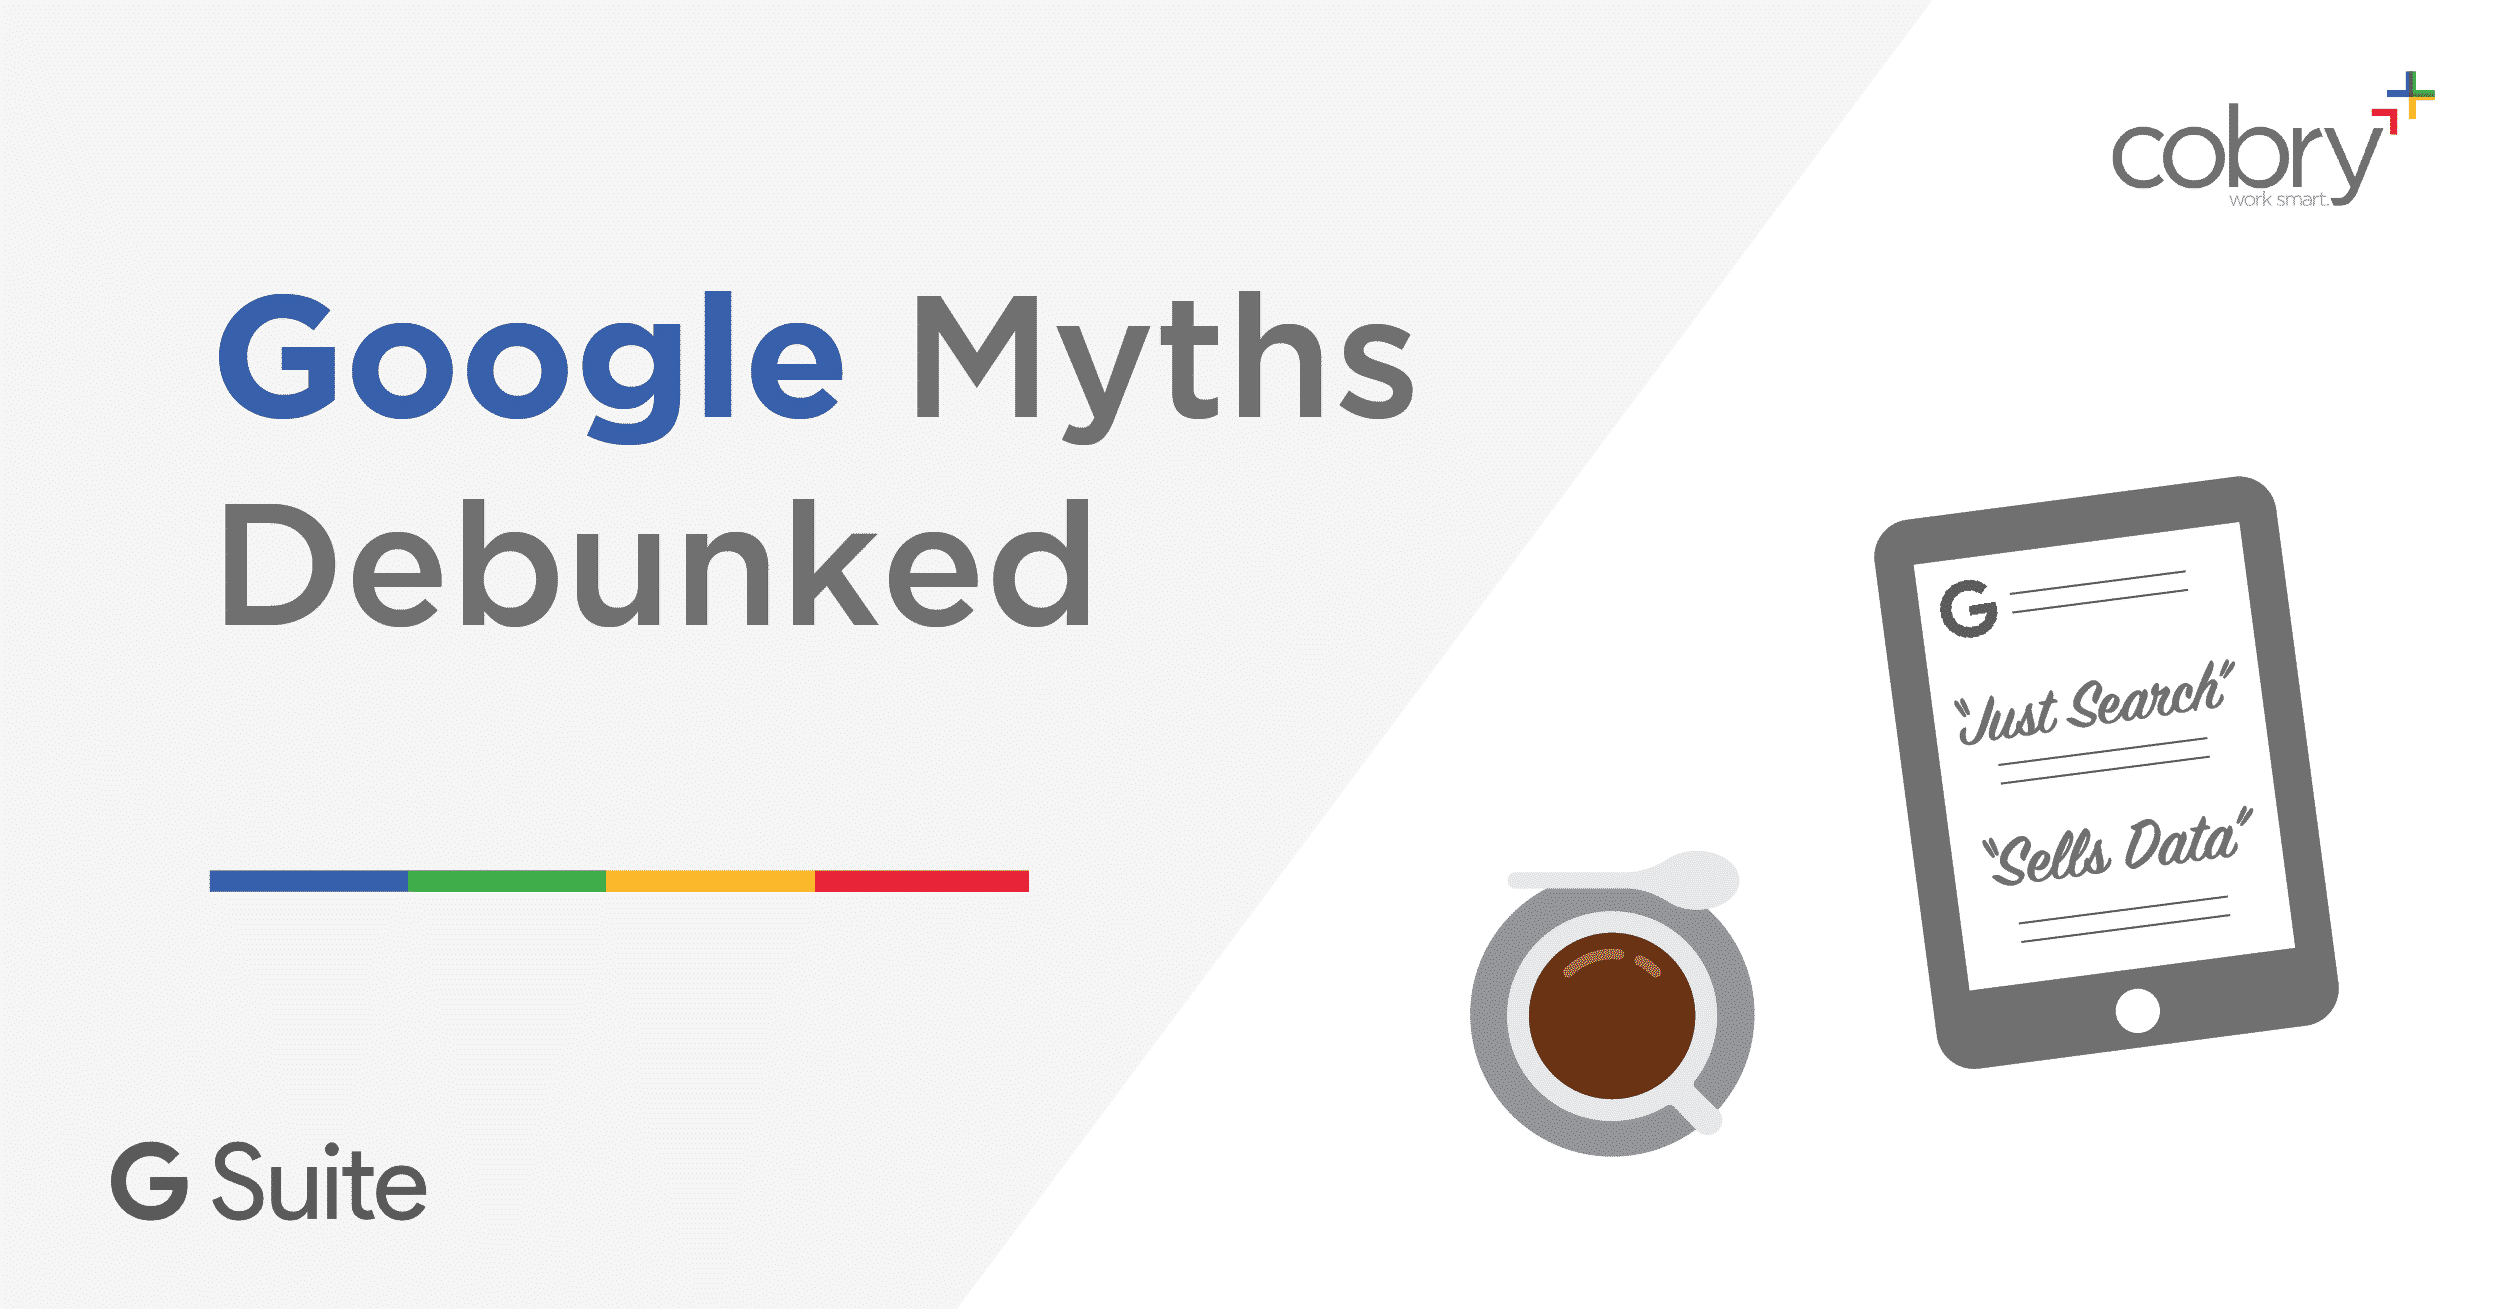 Google Myths